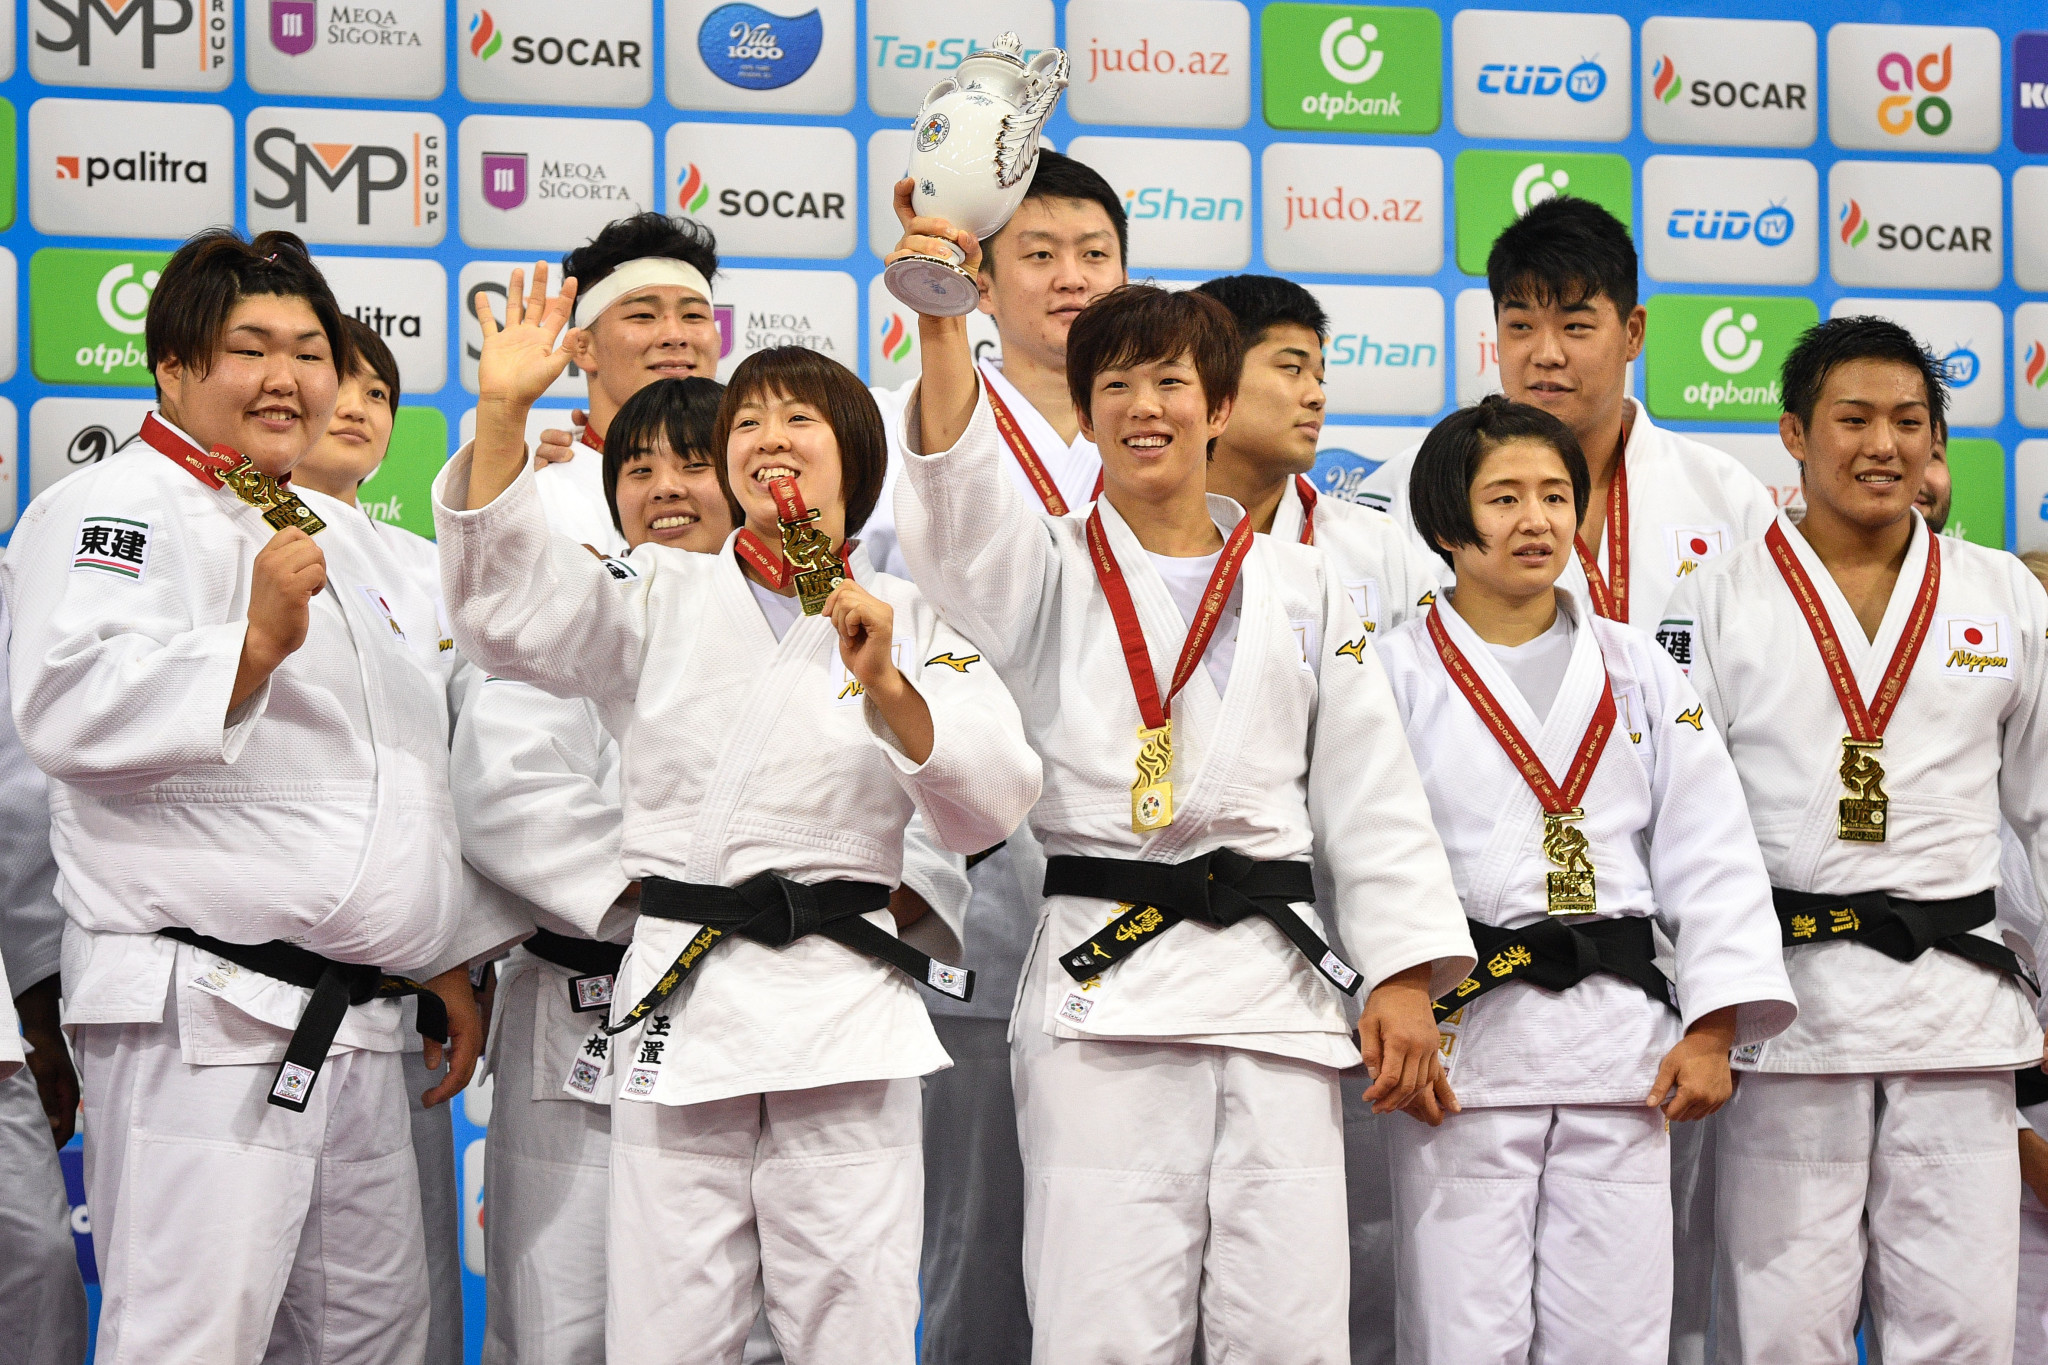 Japan have proved dominant in the format, winning gold medals in 2017 and 2018 ©Getty Images